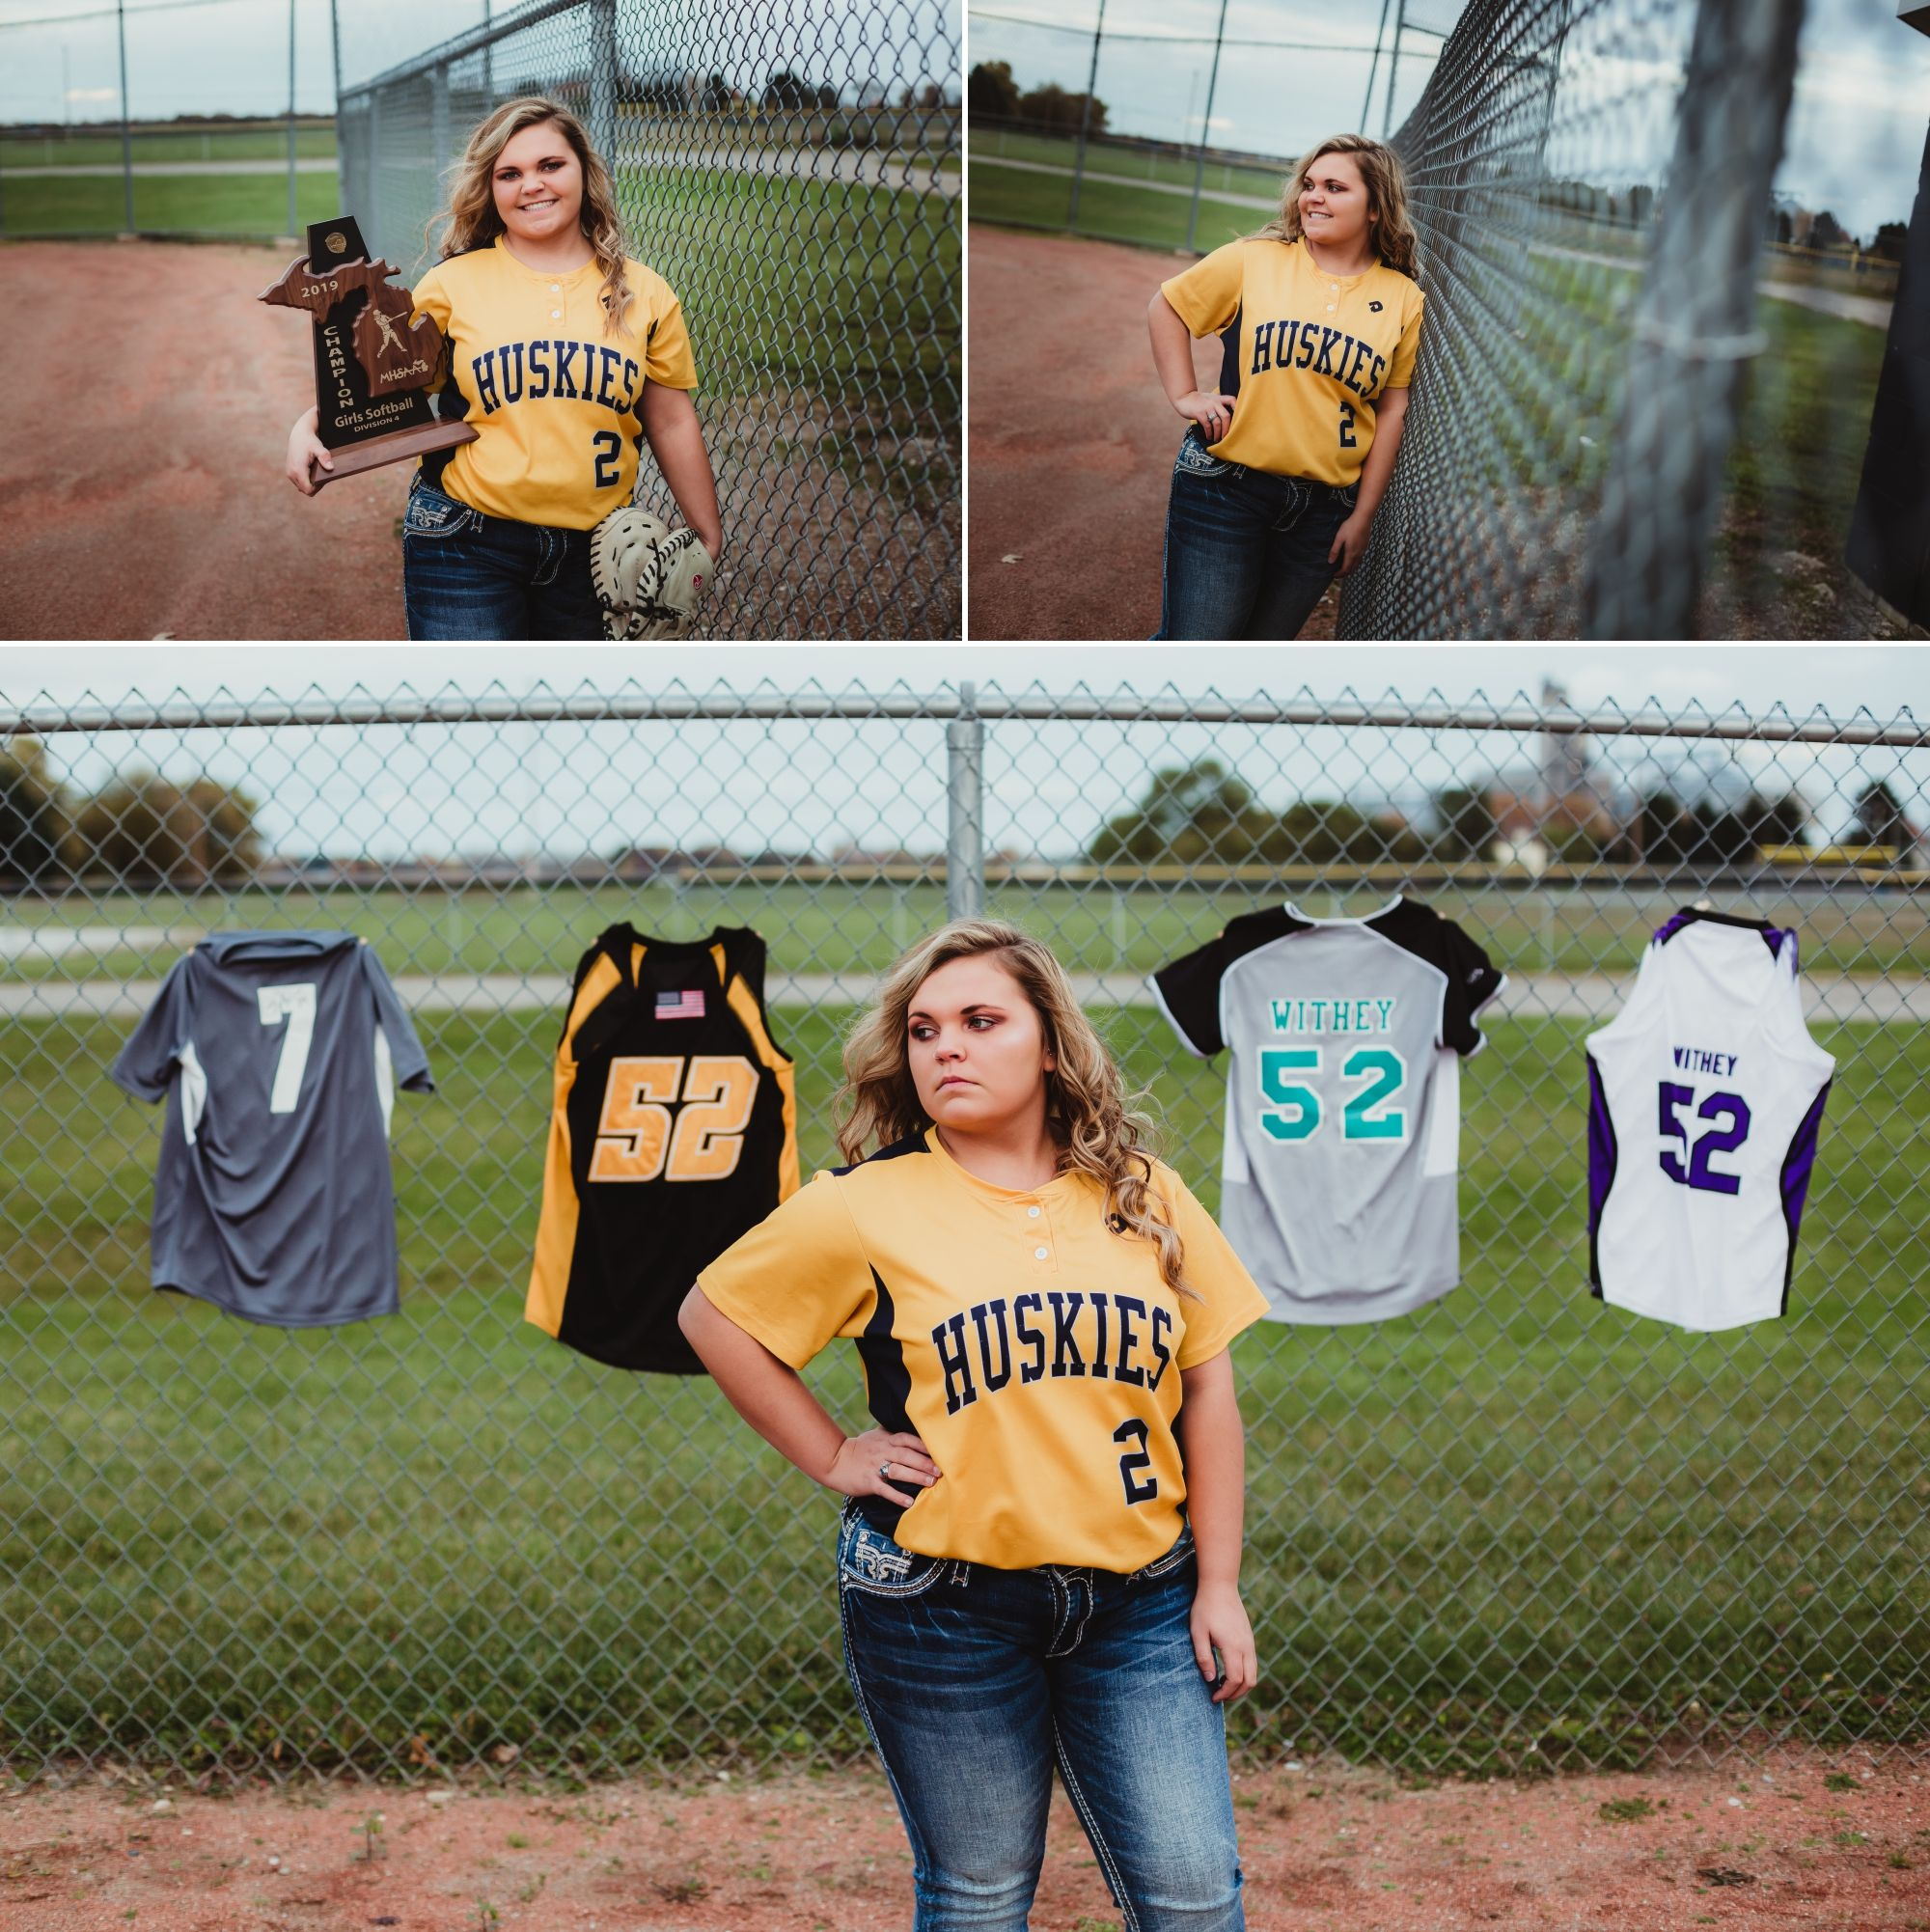 High school senior girl near the fence on a softball field with a trophy and jerseys displayed.